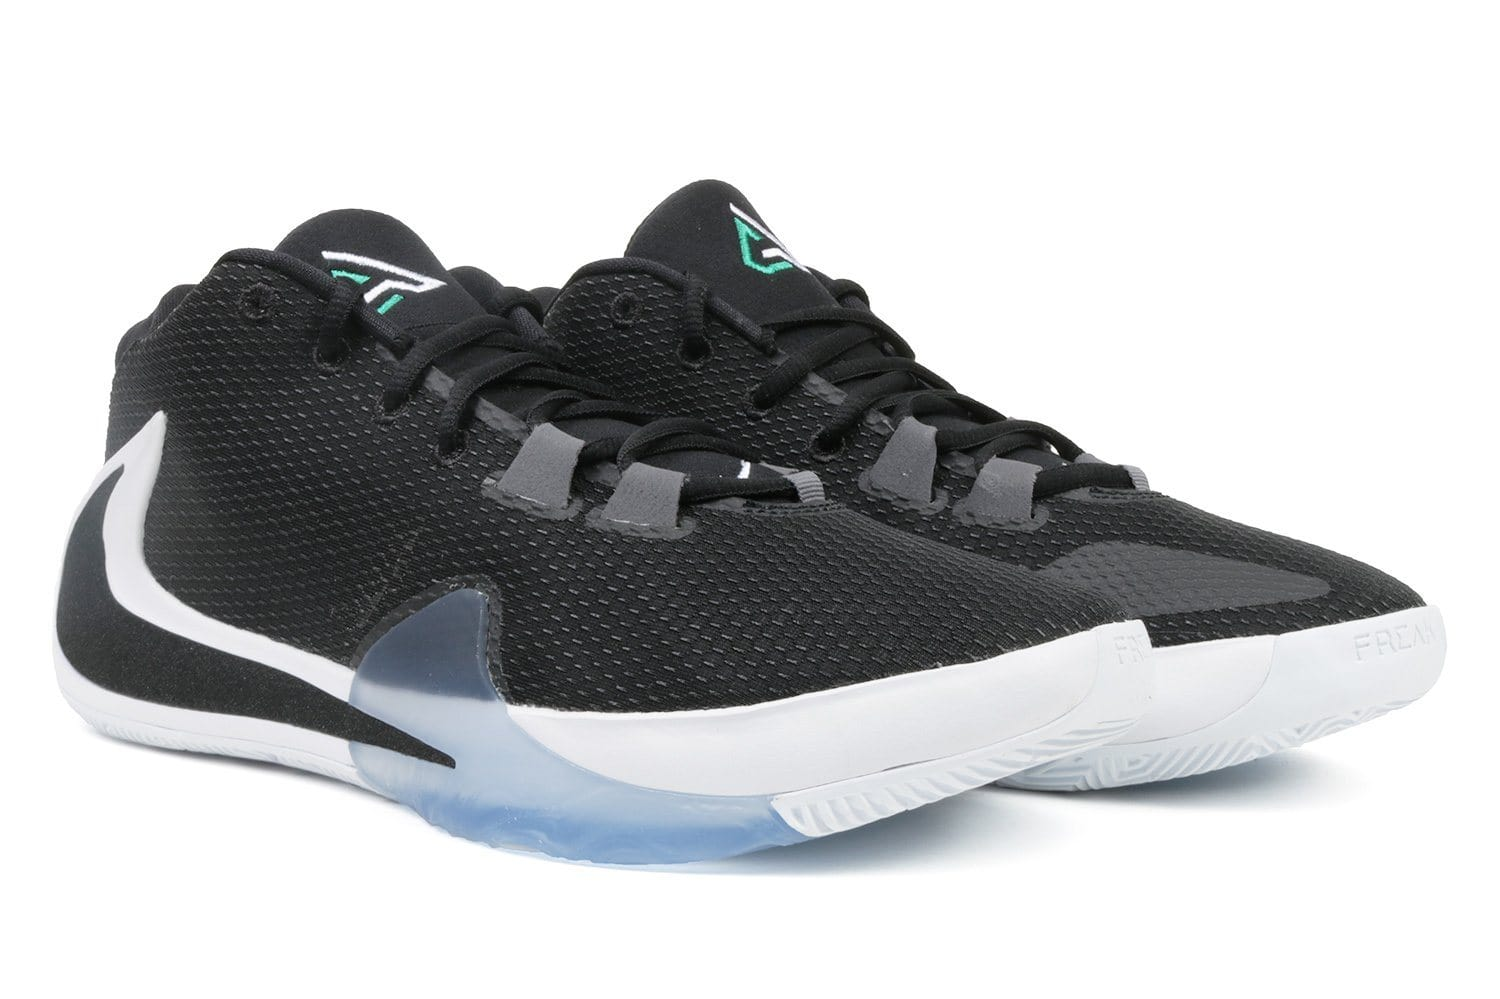 ZOOM FREAK 1 - BQ5422-001 MENS FOOTWEAR NIKE